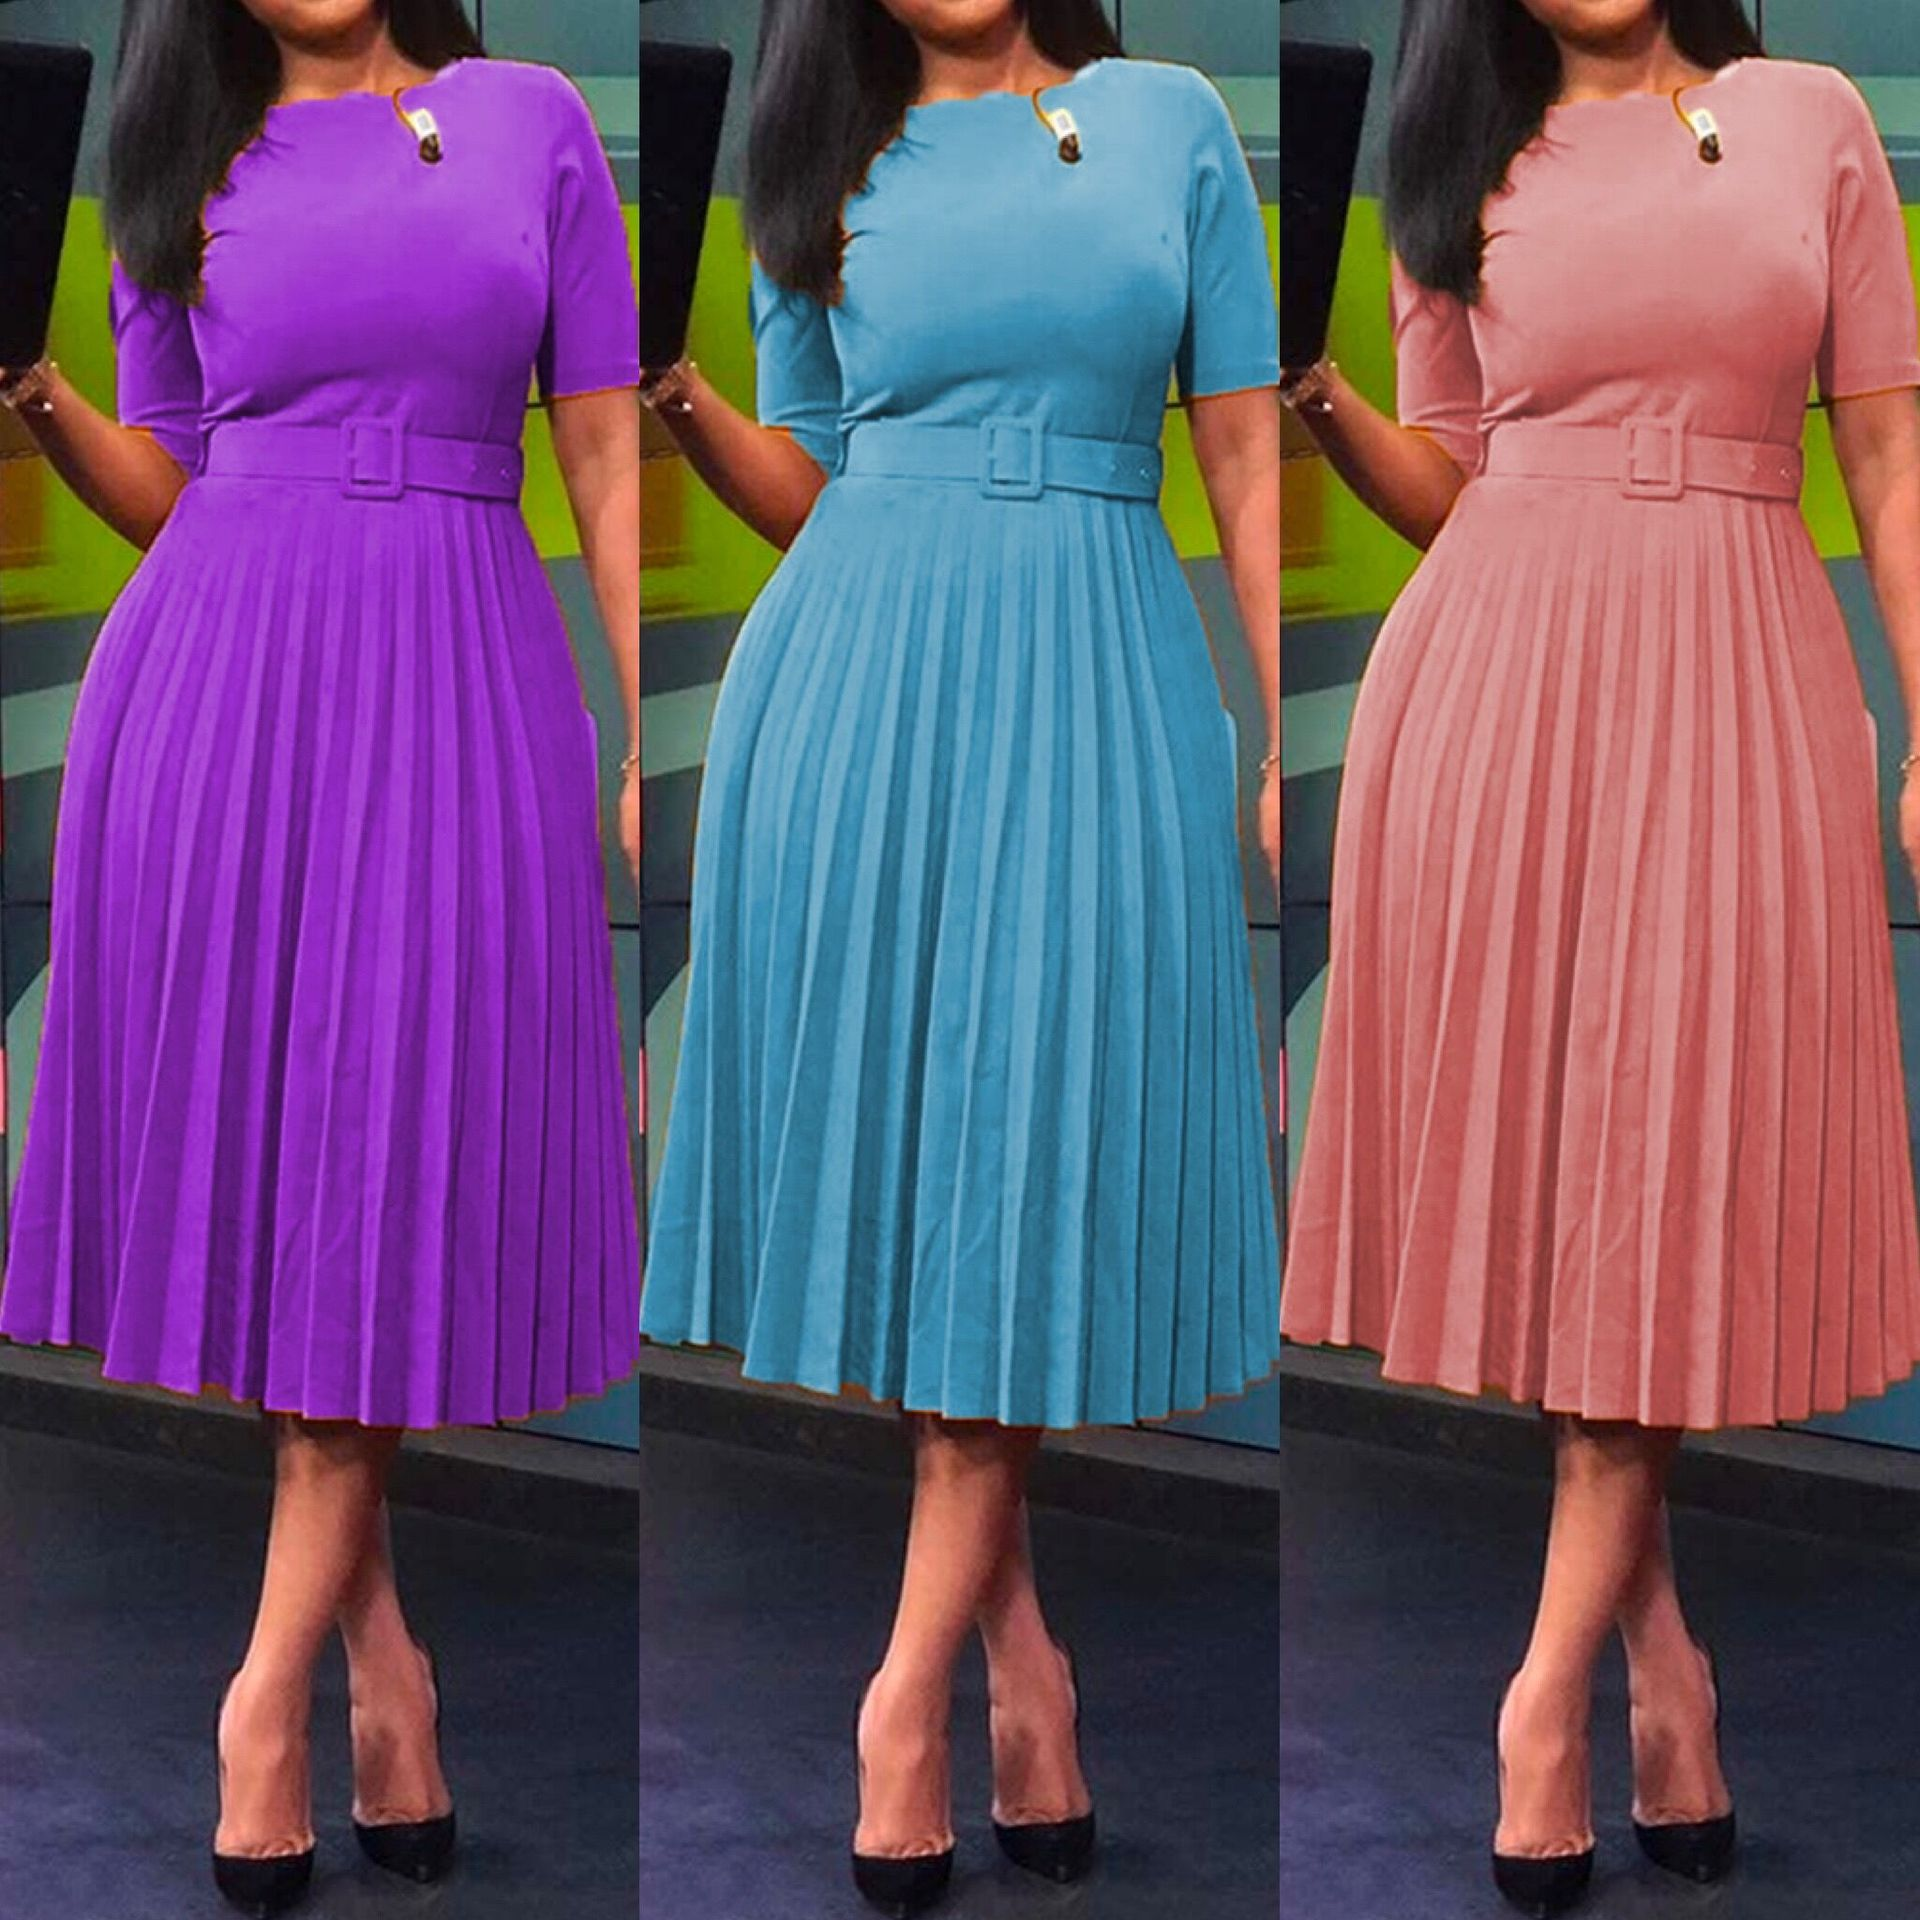 Women's dresses in American and African solid color with pleated skirts and waistbands are in stock